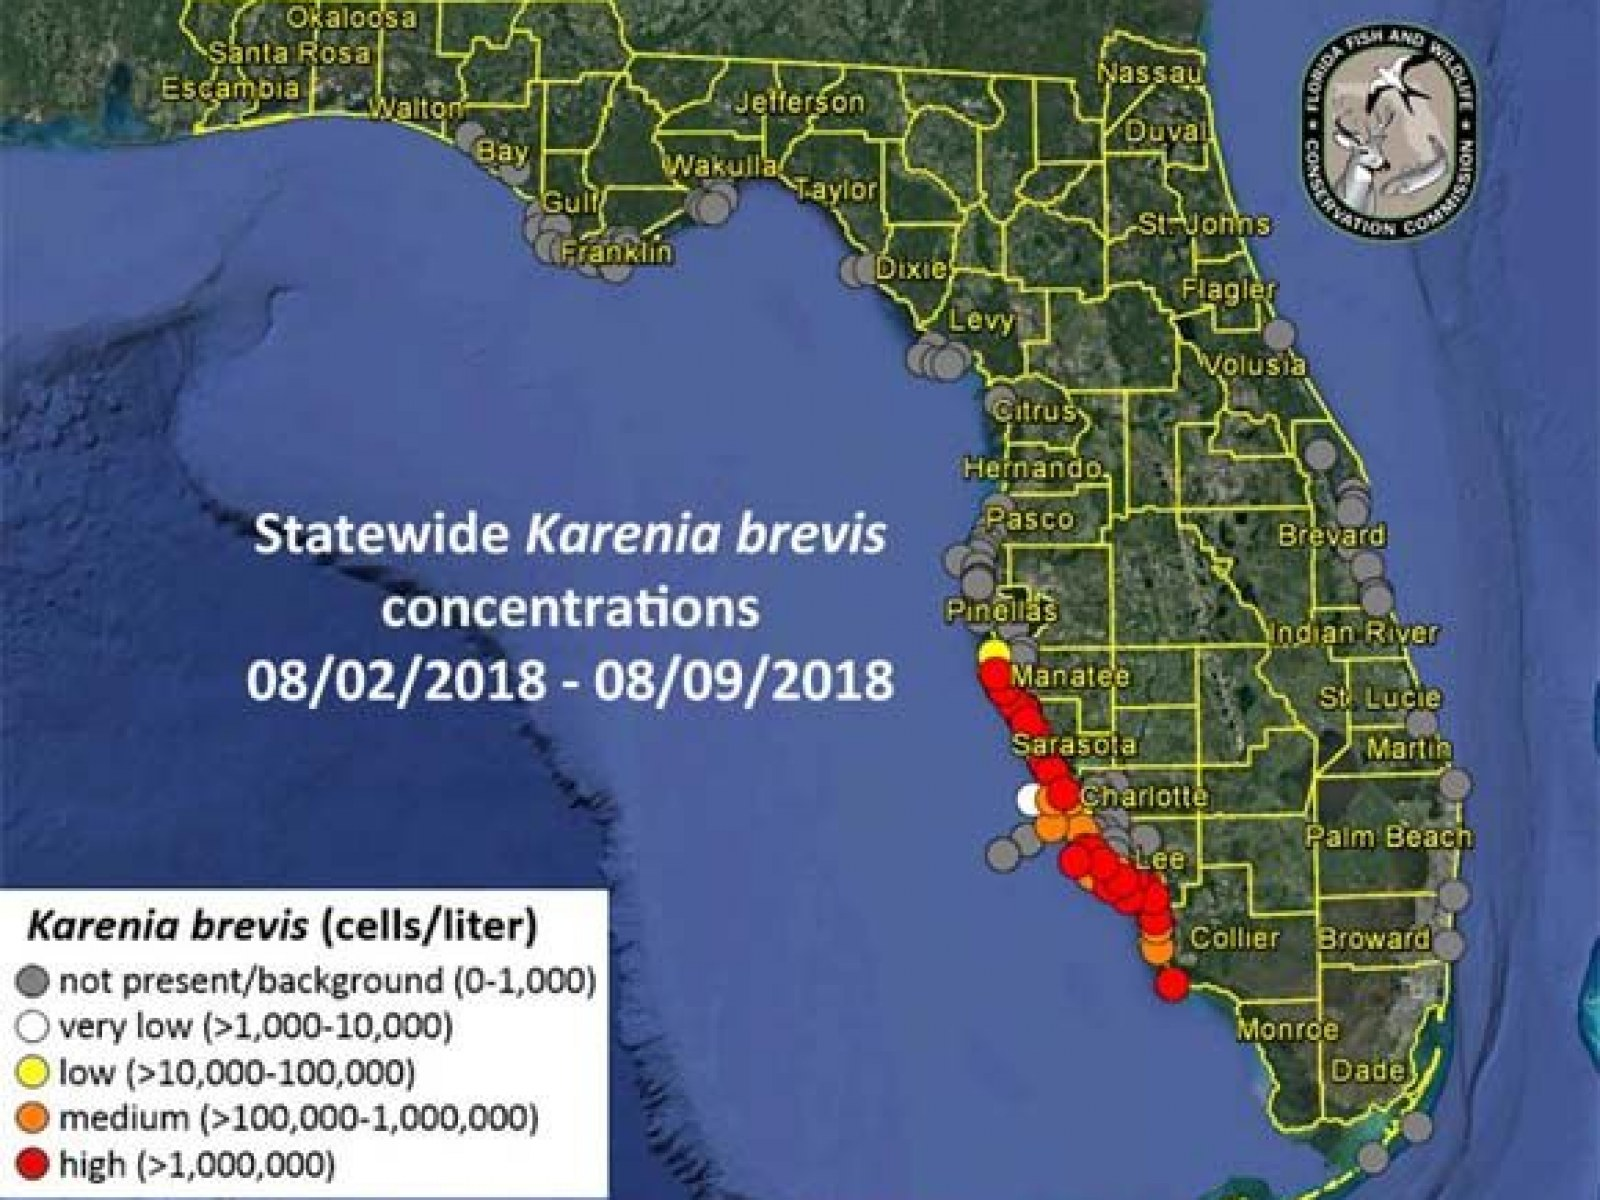 Red Tide Florida 2018 Map Florida Red Tide 2018 Map, Update: When Will Red Tide End?